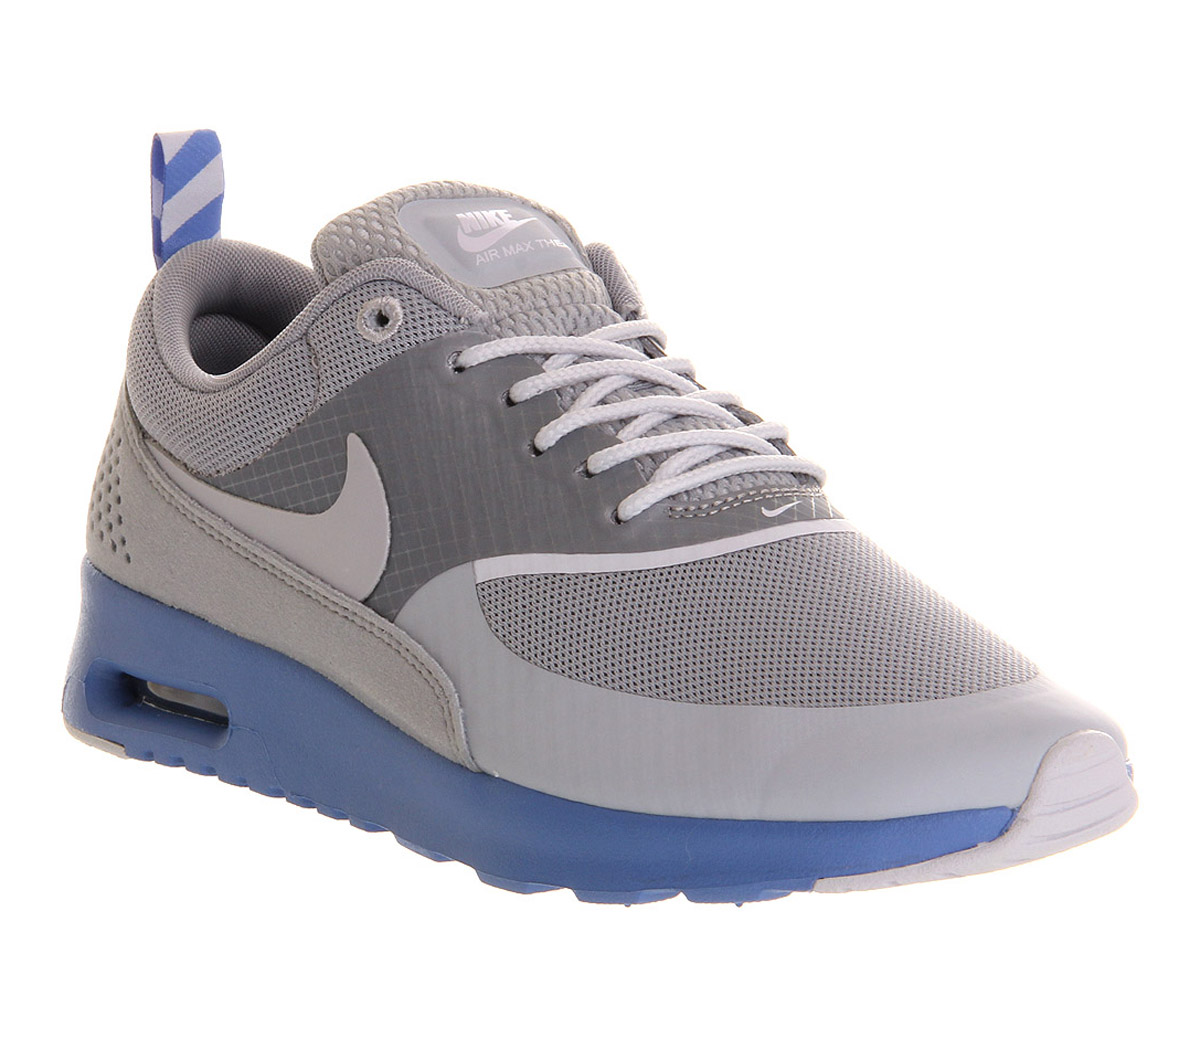 nike air max thea grey blue sparkle in gray lyst. Black Bedroom Furniture Sets. Home Design Ideas